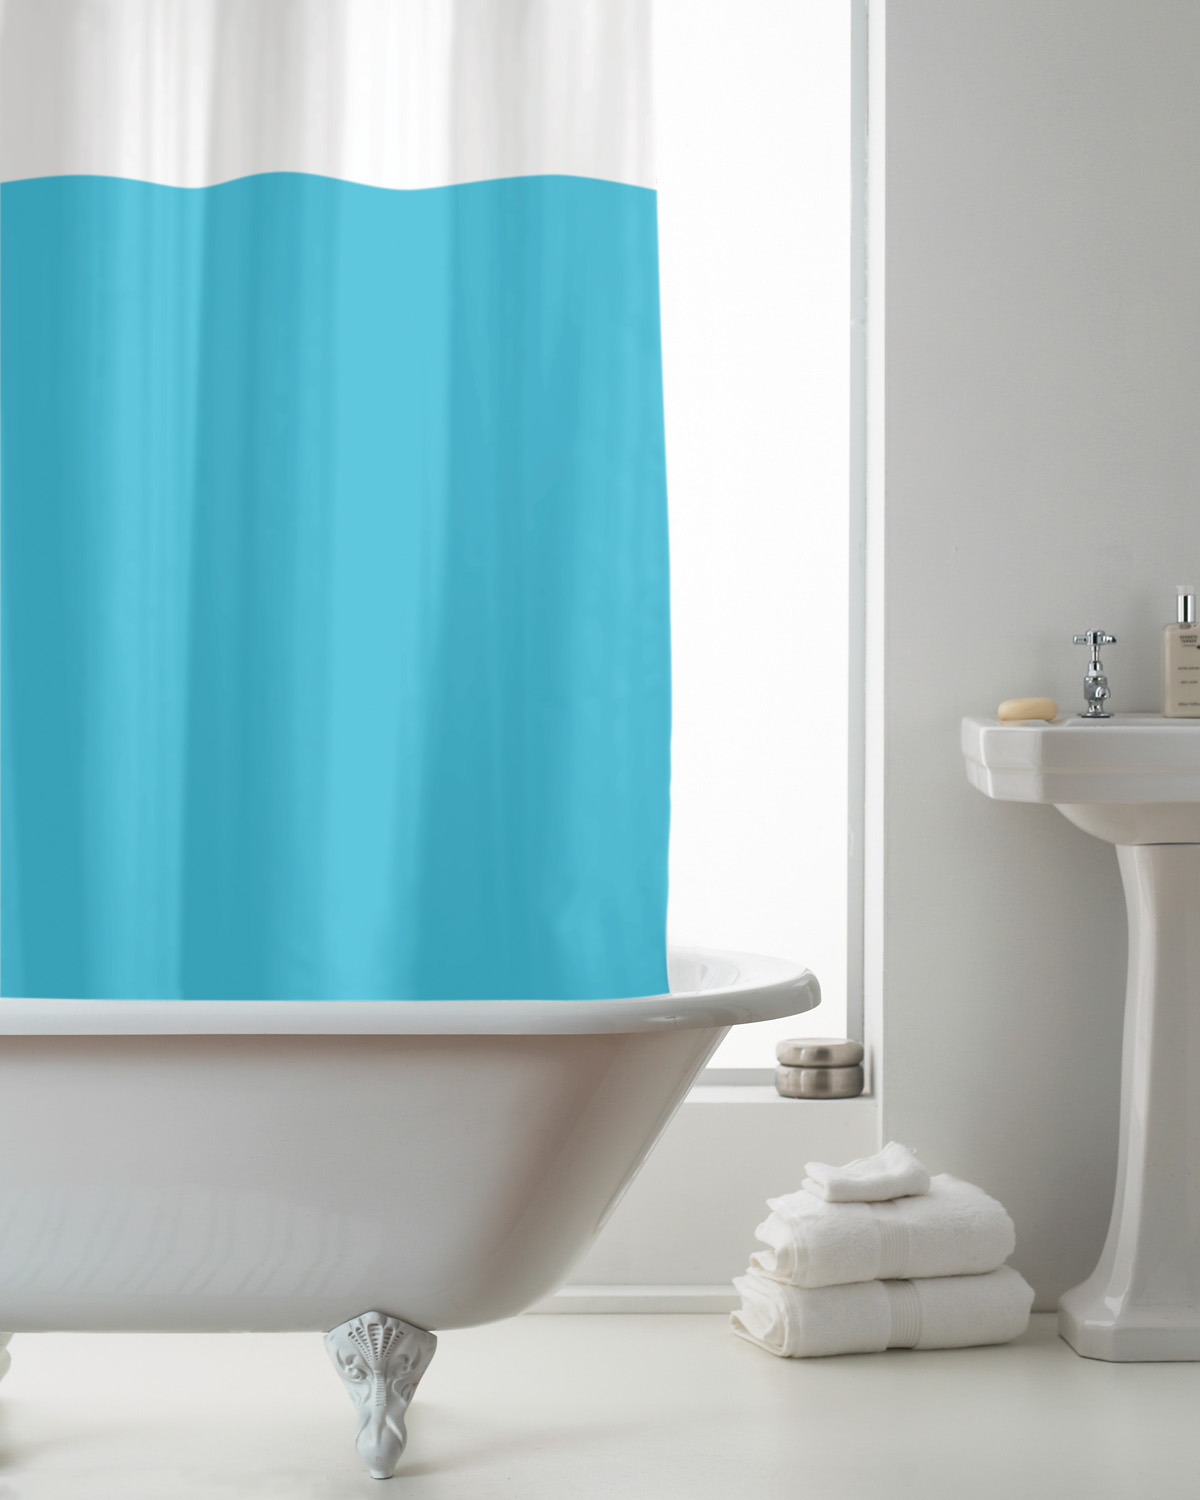 Details About Country Club Peva Shower Curtain Blue And Clear Bathroom Accessories Decoration